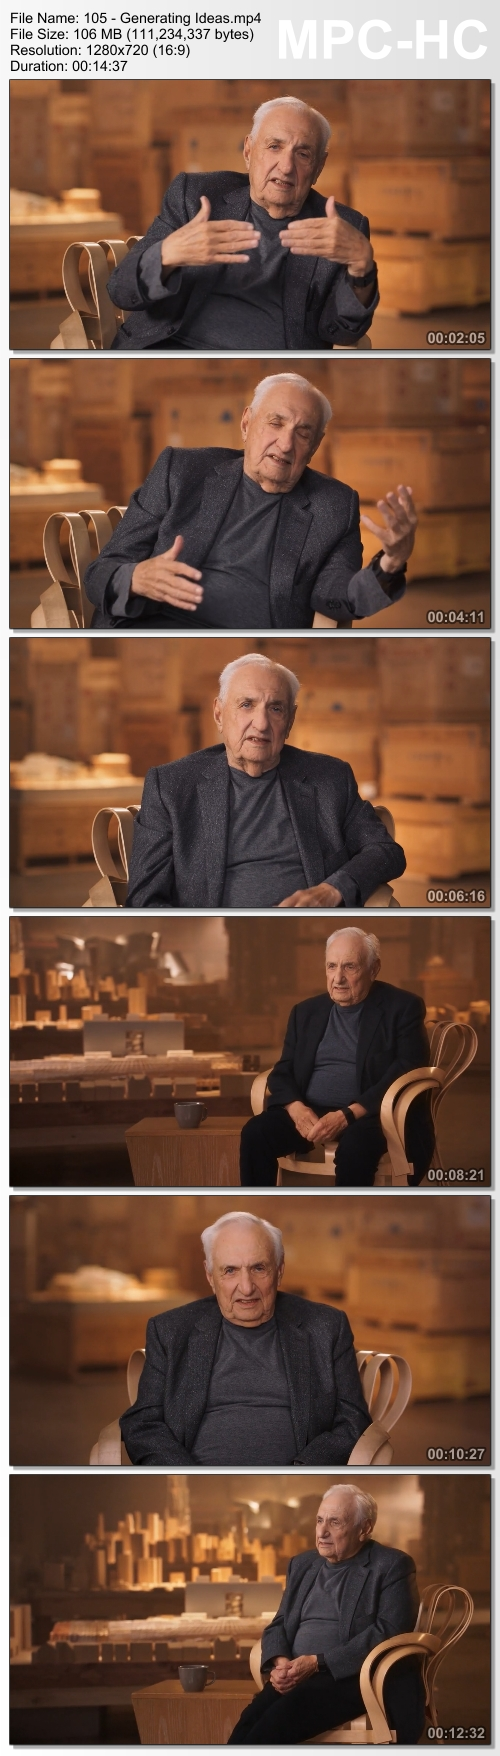 MasterClass - Frank Gehry Teaches Design and Architecture